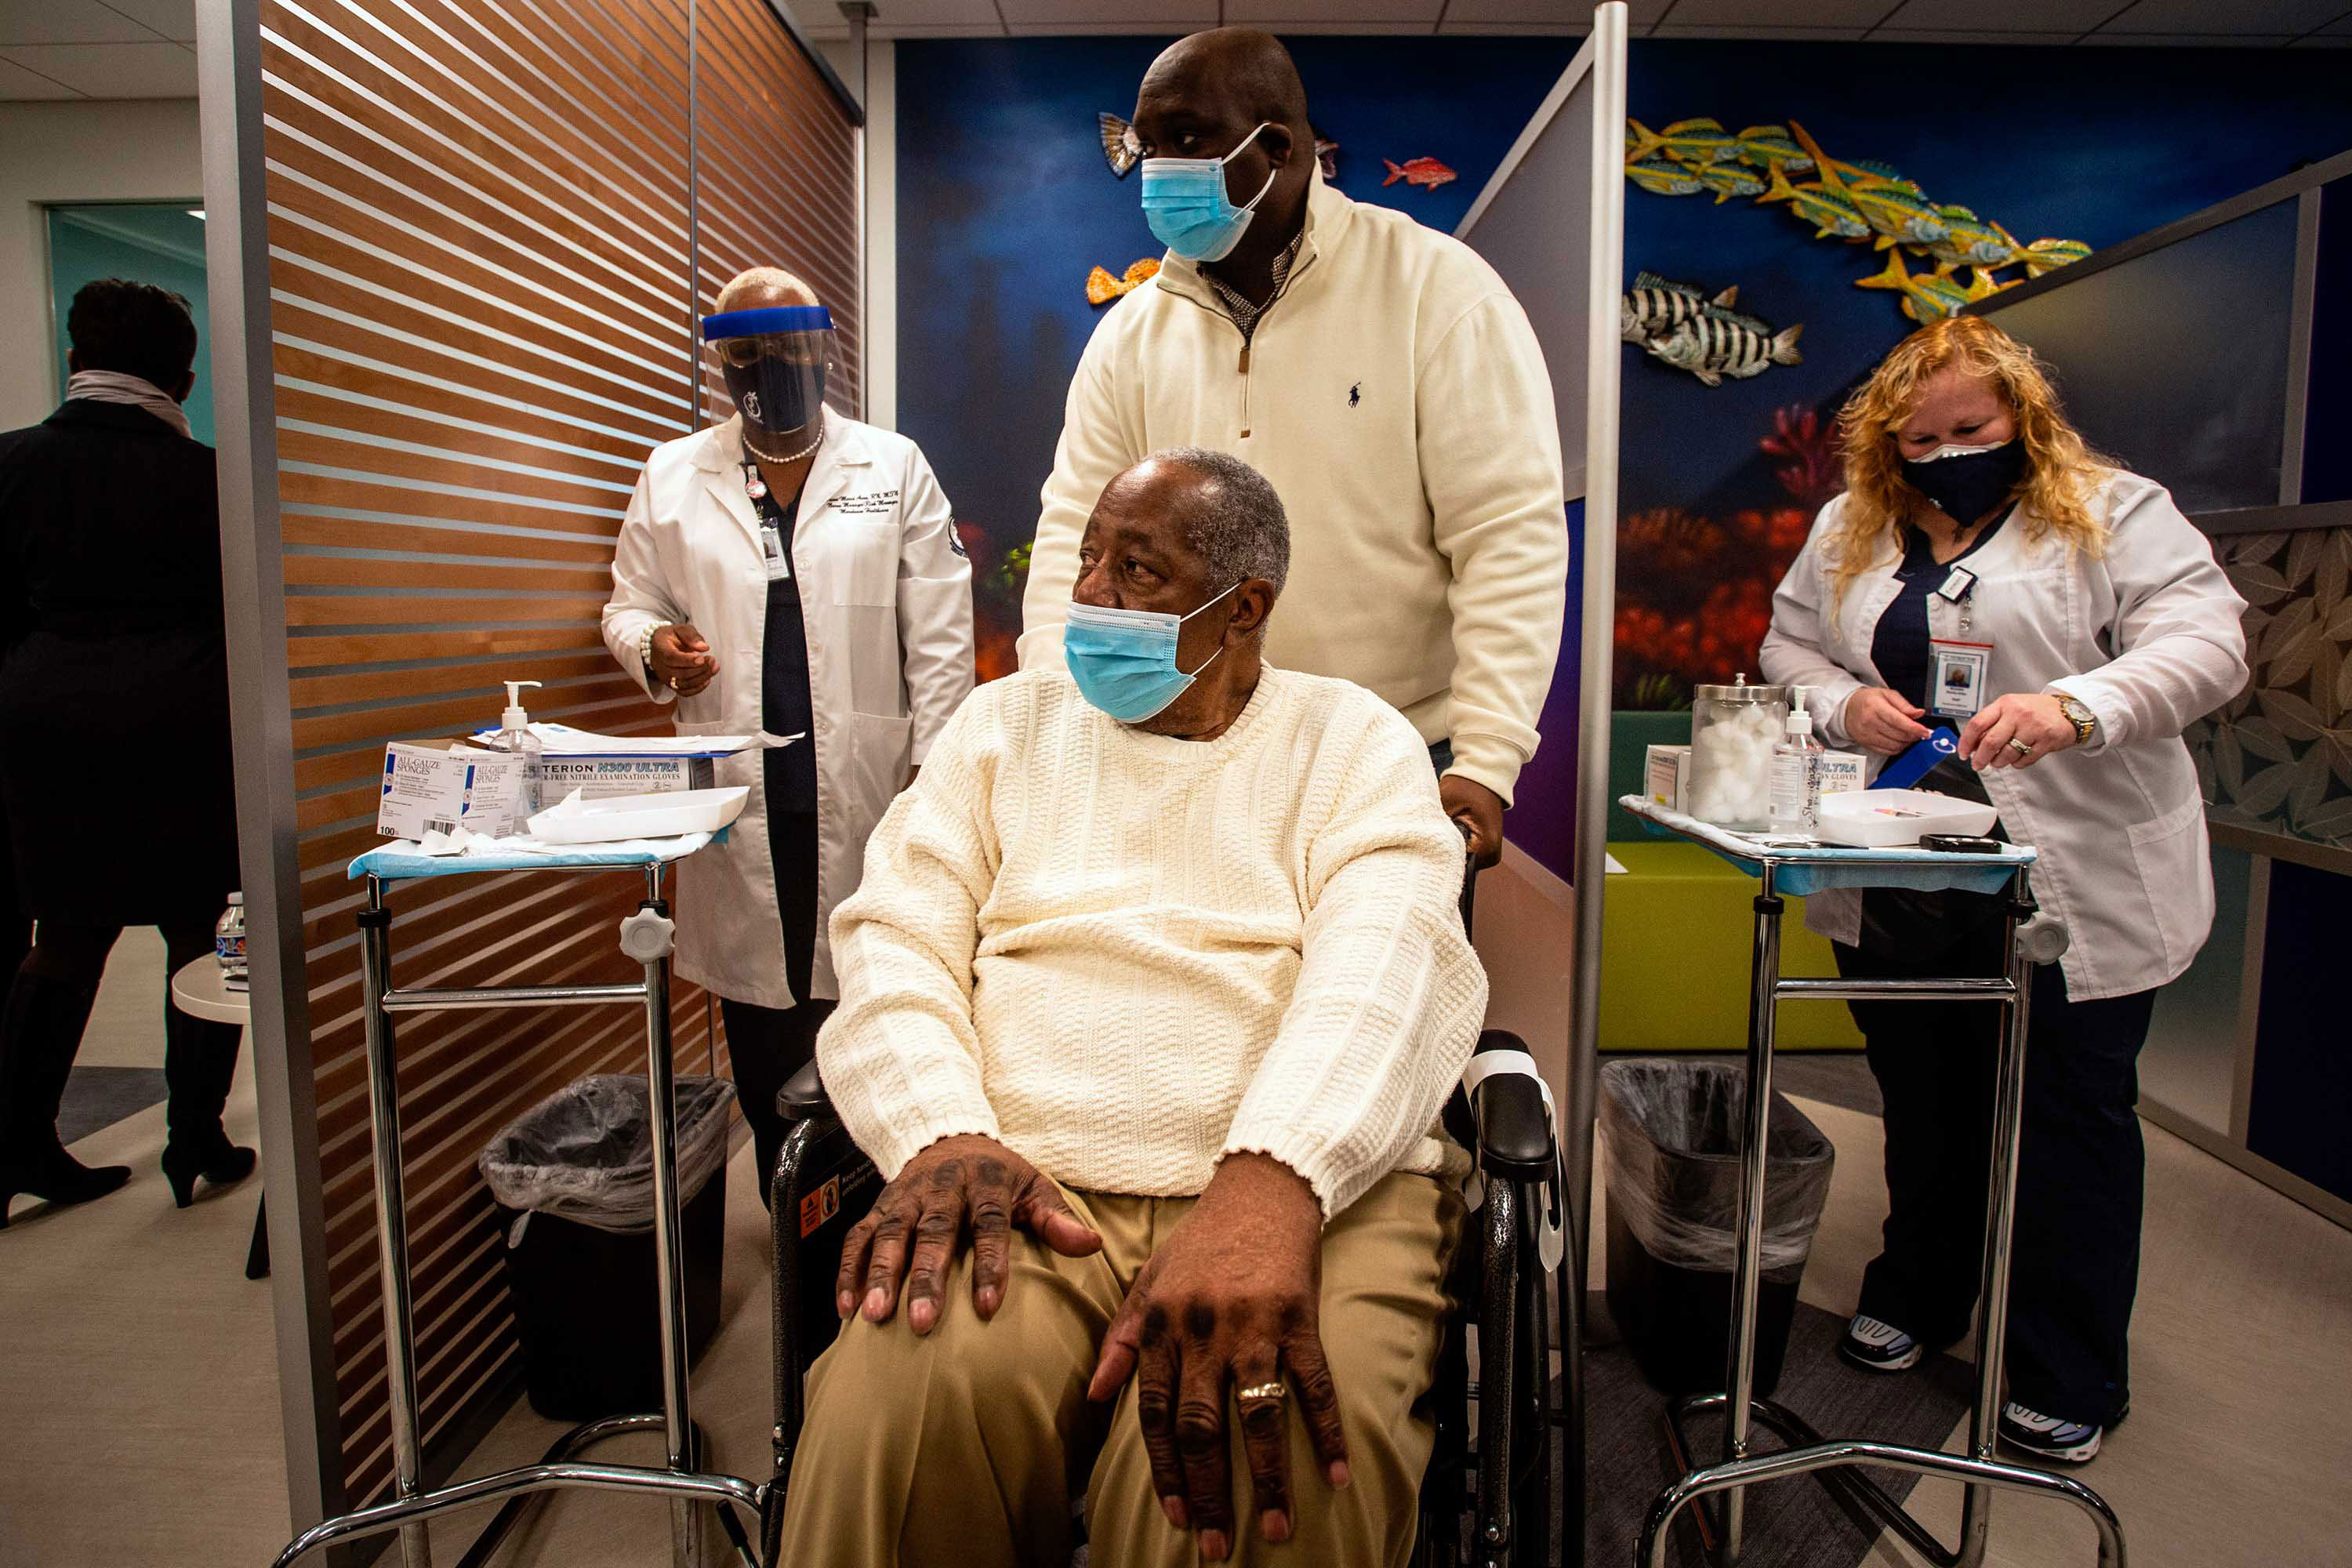 Baseball Hall of Famer Hank Aaron prepares to receive his Covid-19 vaccination on January 5 at Morehouse School of Medicine in Atlanta.